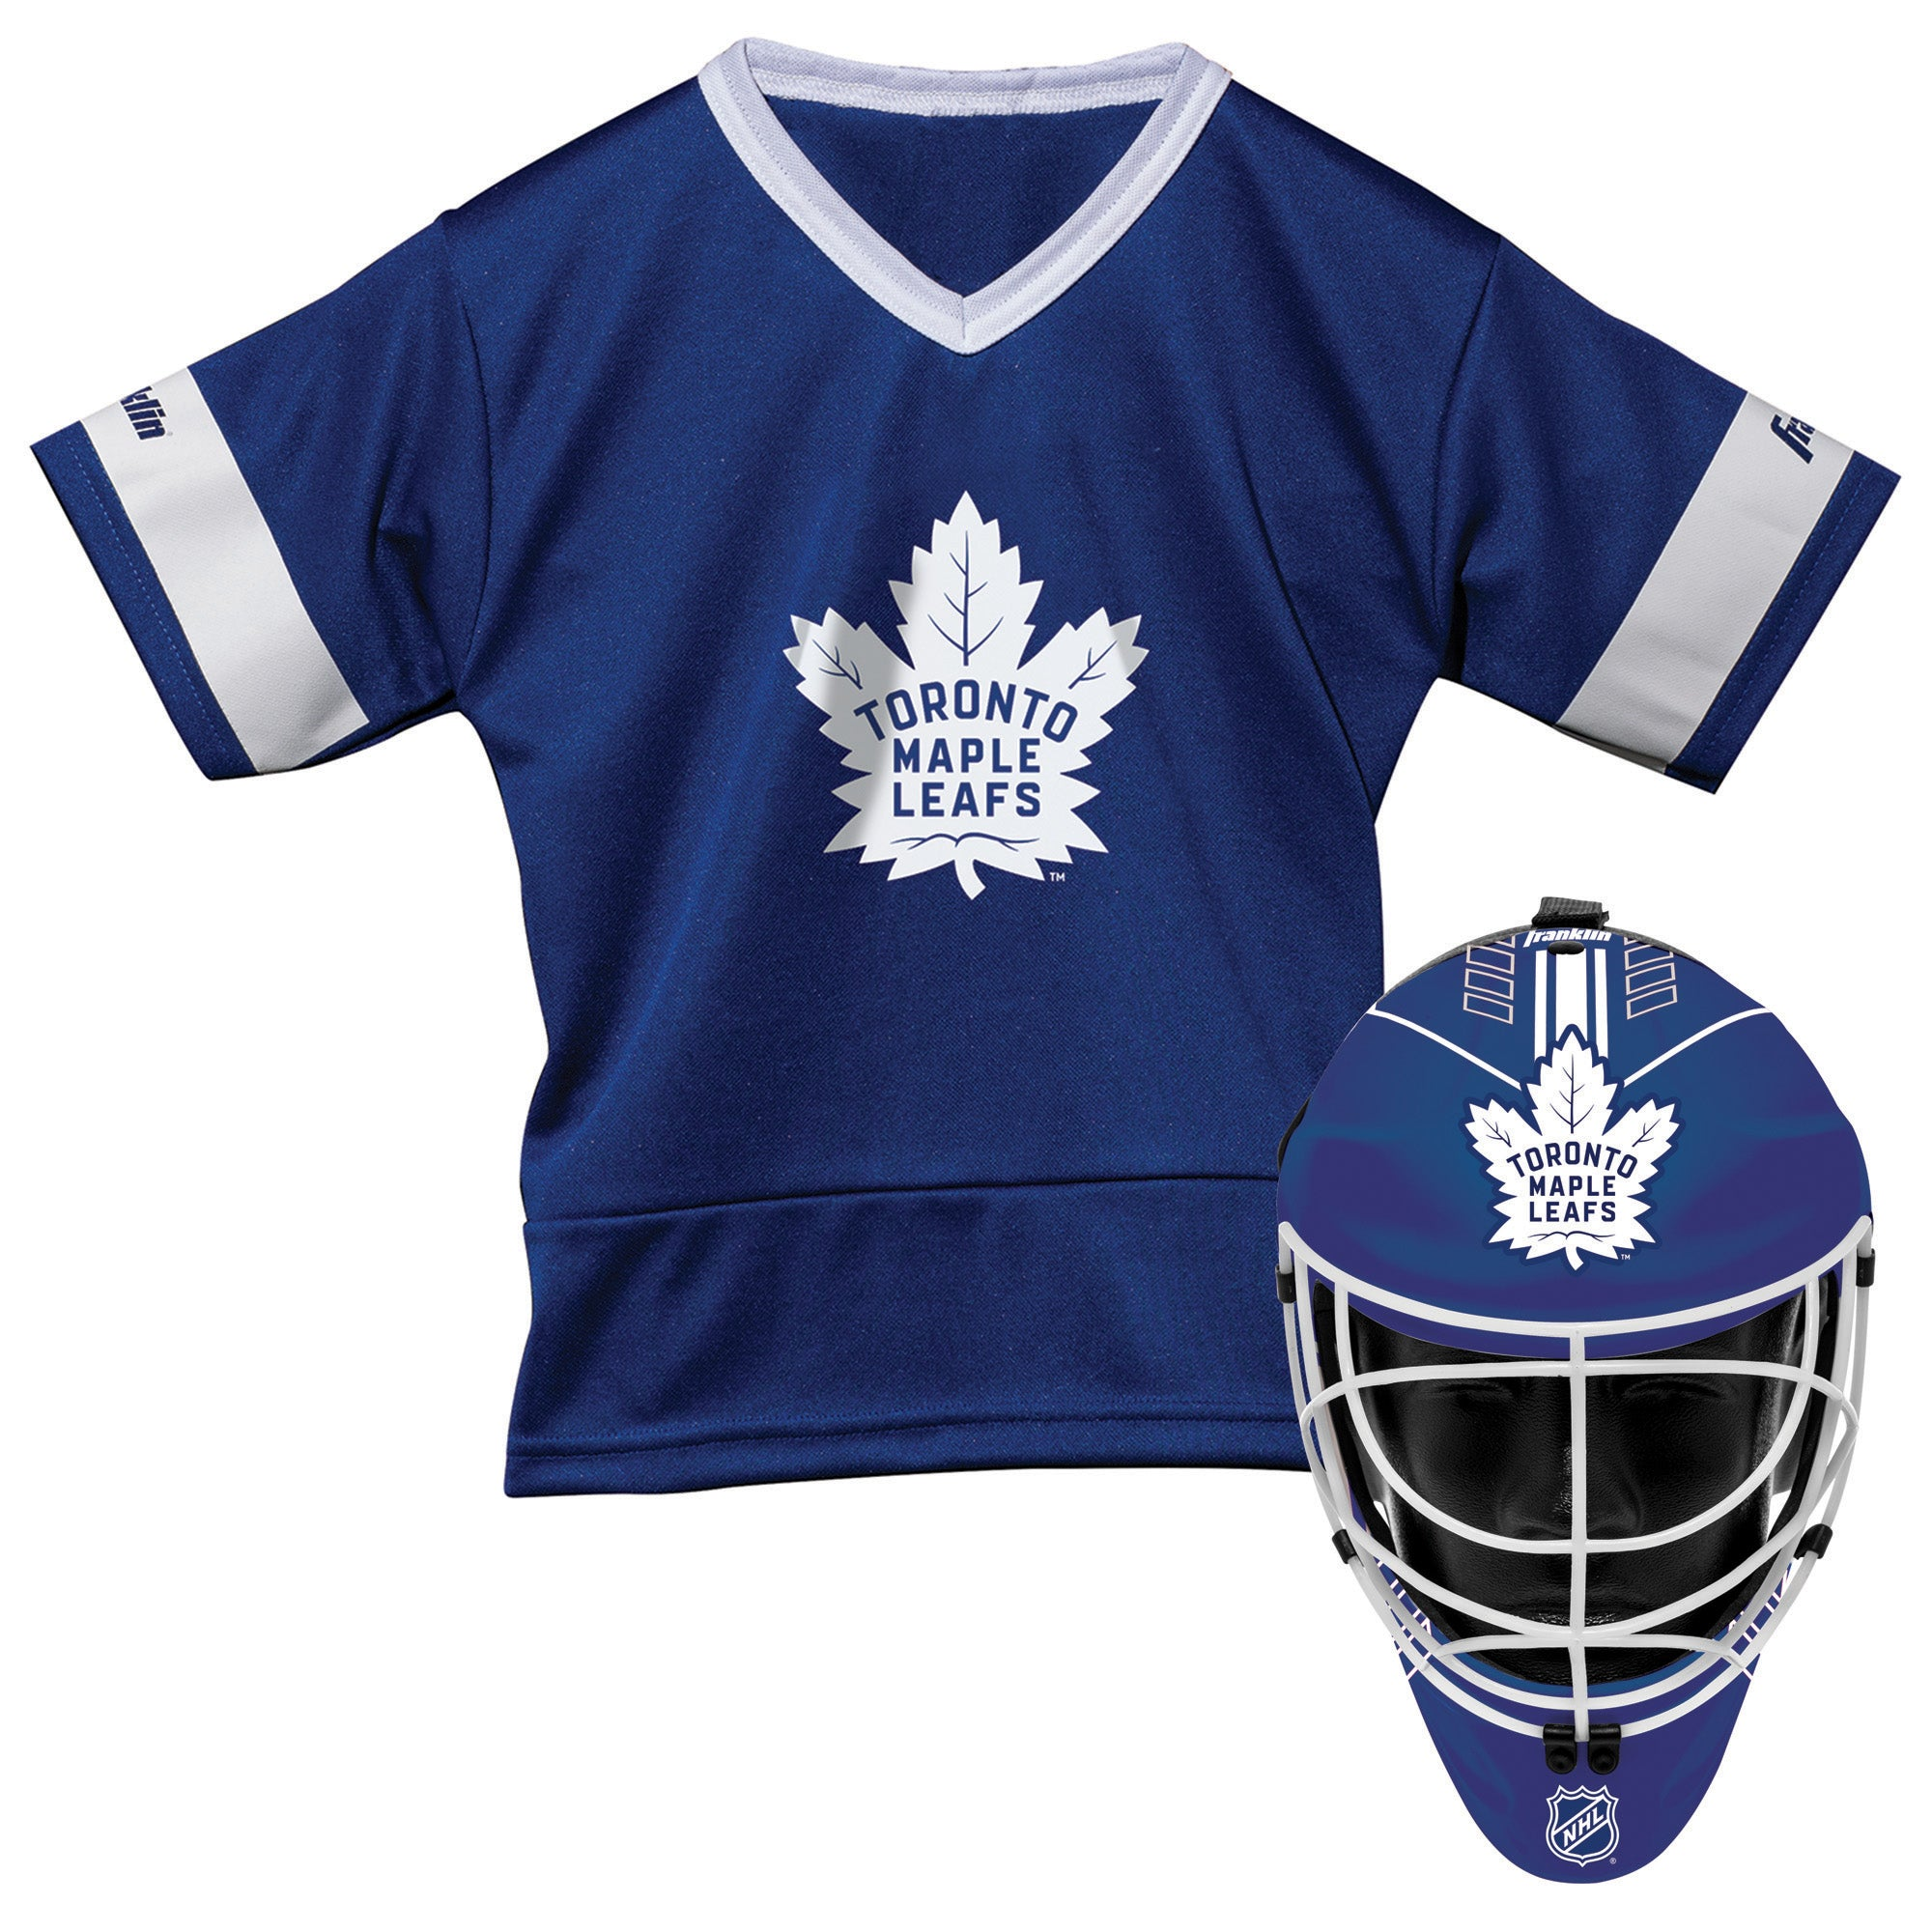 Maple Leafs Franklin Mask and Jersey Set